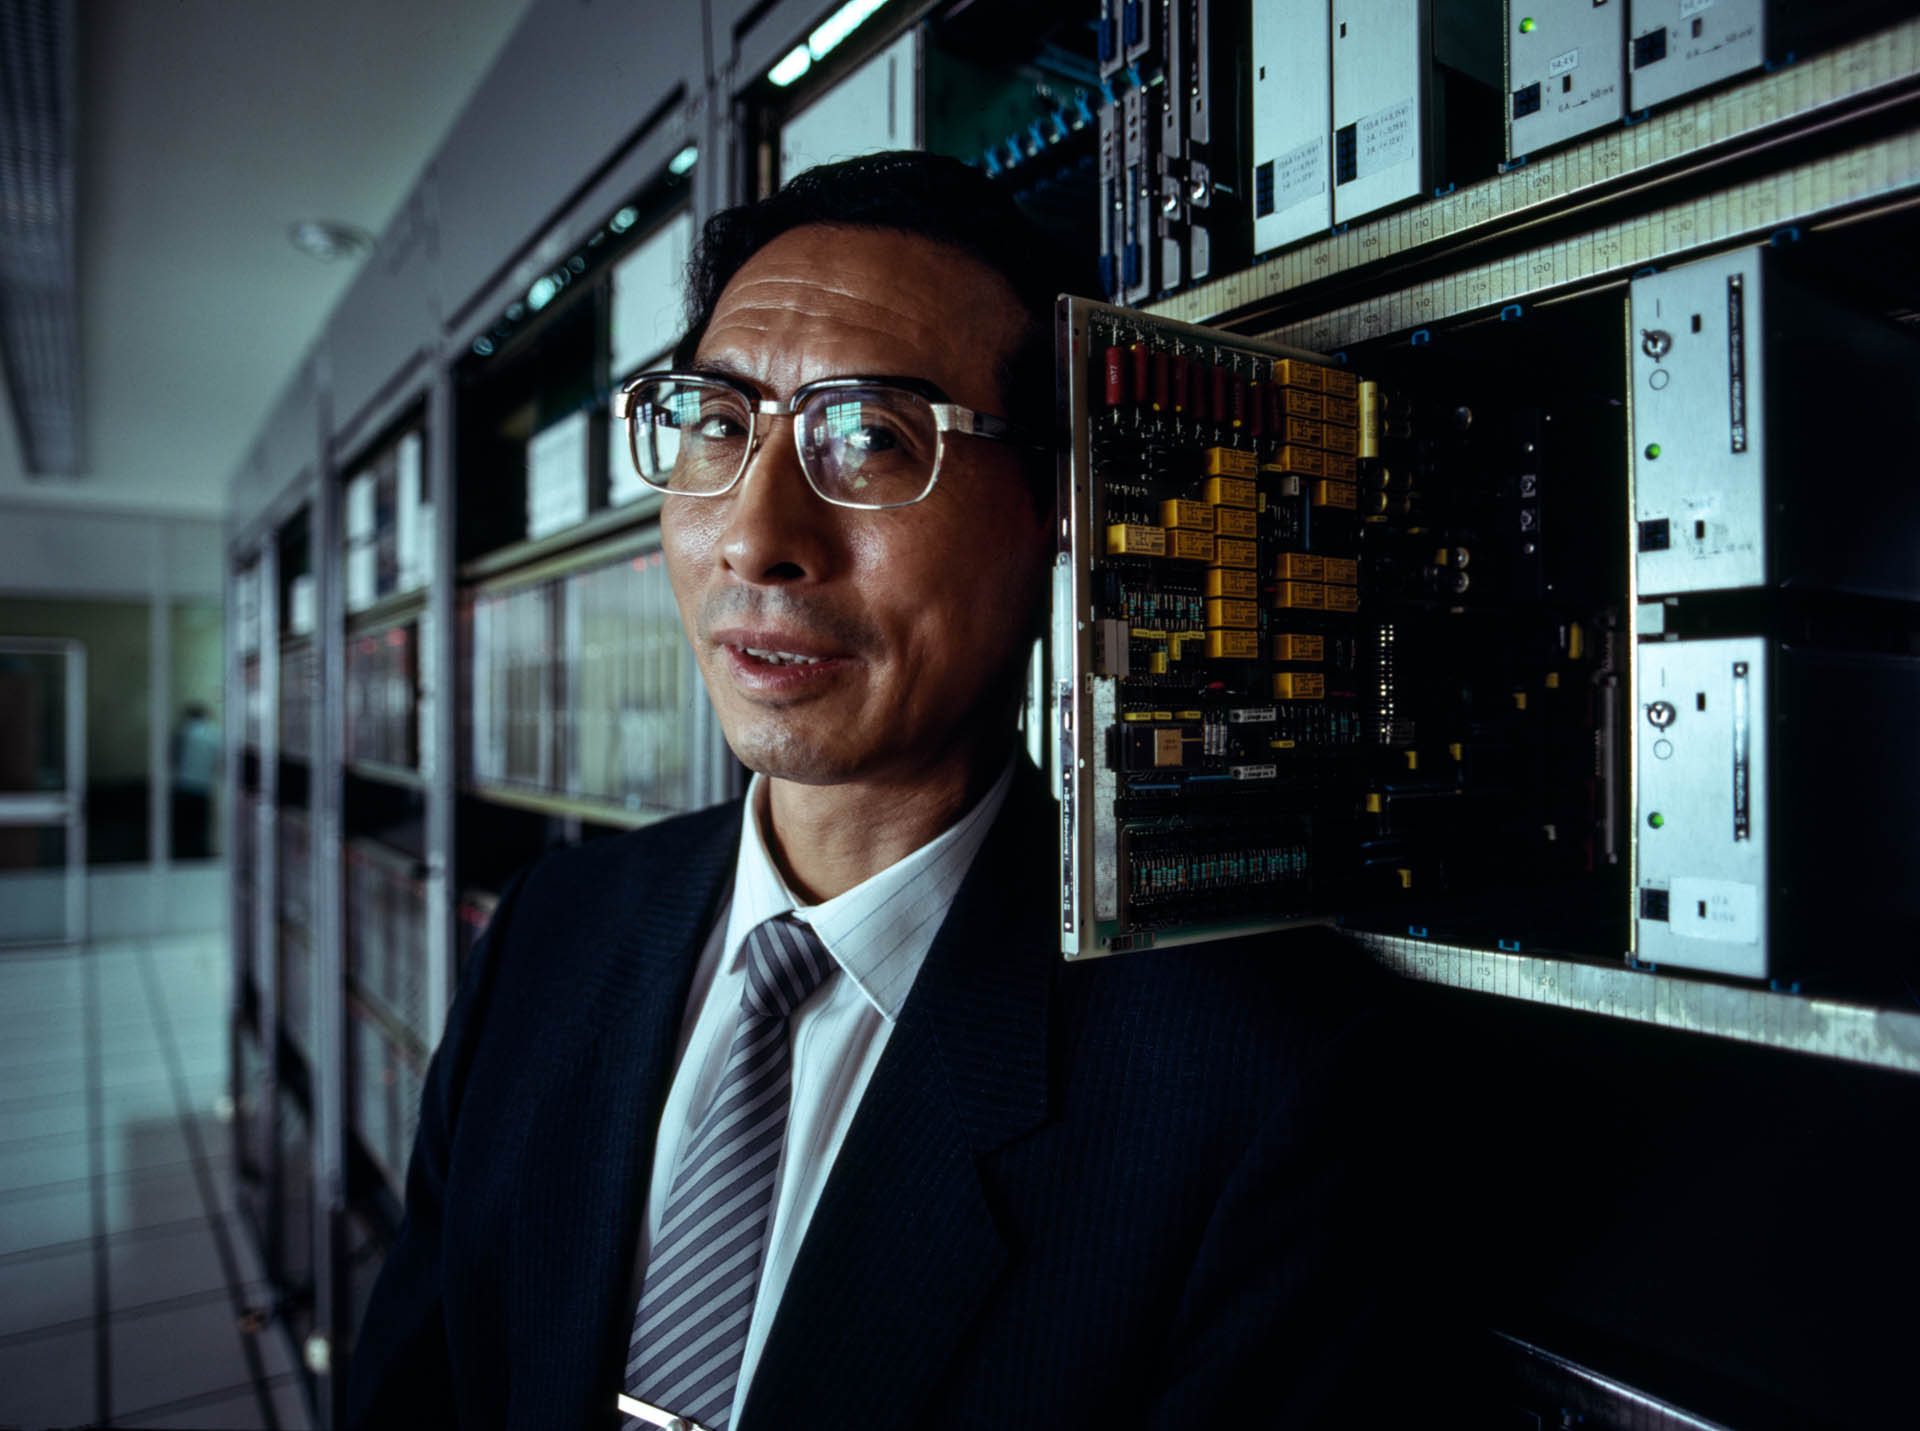 Shanghai, China - June 1988. In 1983 Xu Deen became CEO of the China National Technical Import Export Corporation. He inaugurated Beijing's first electronic telecommunication center.